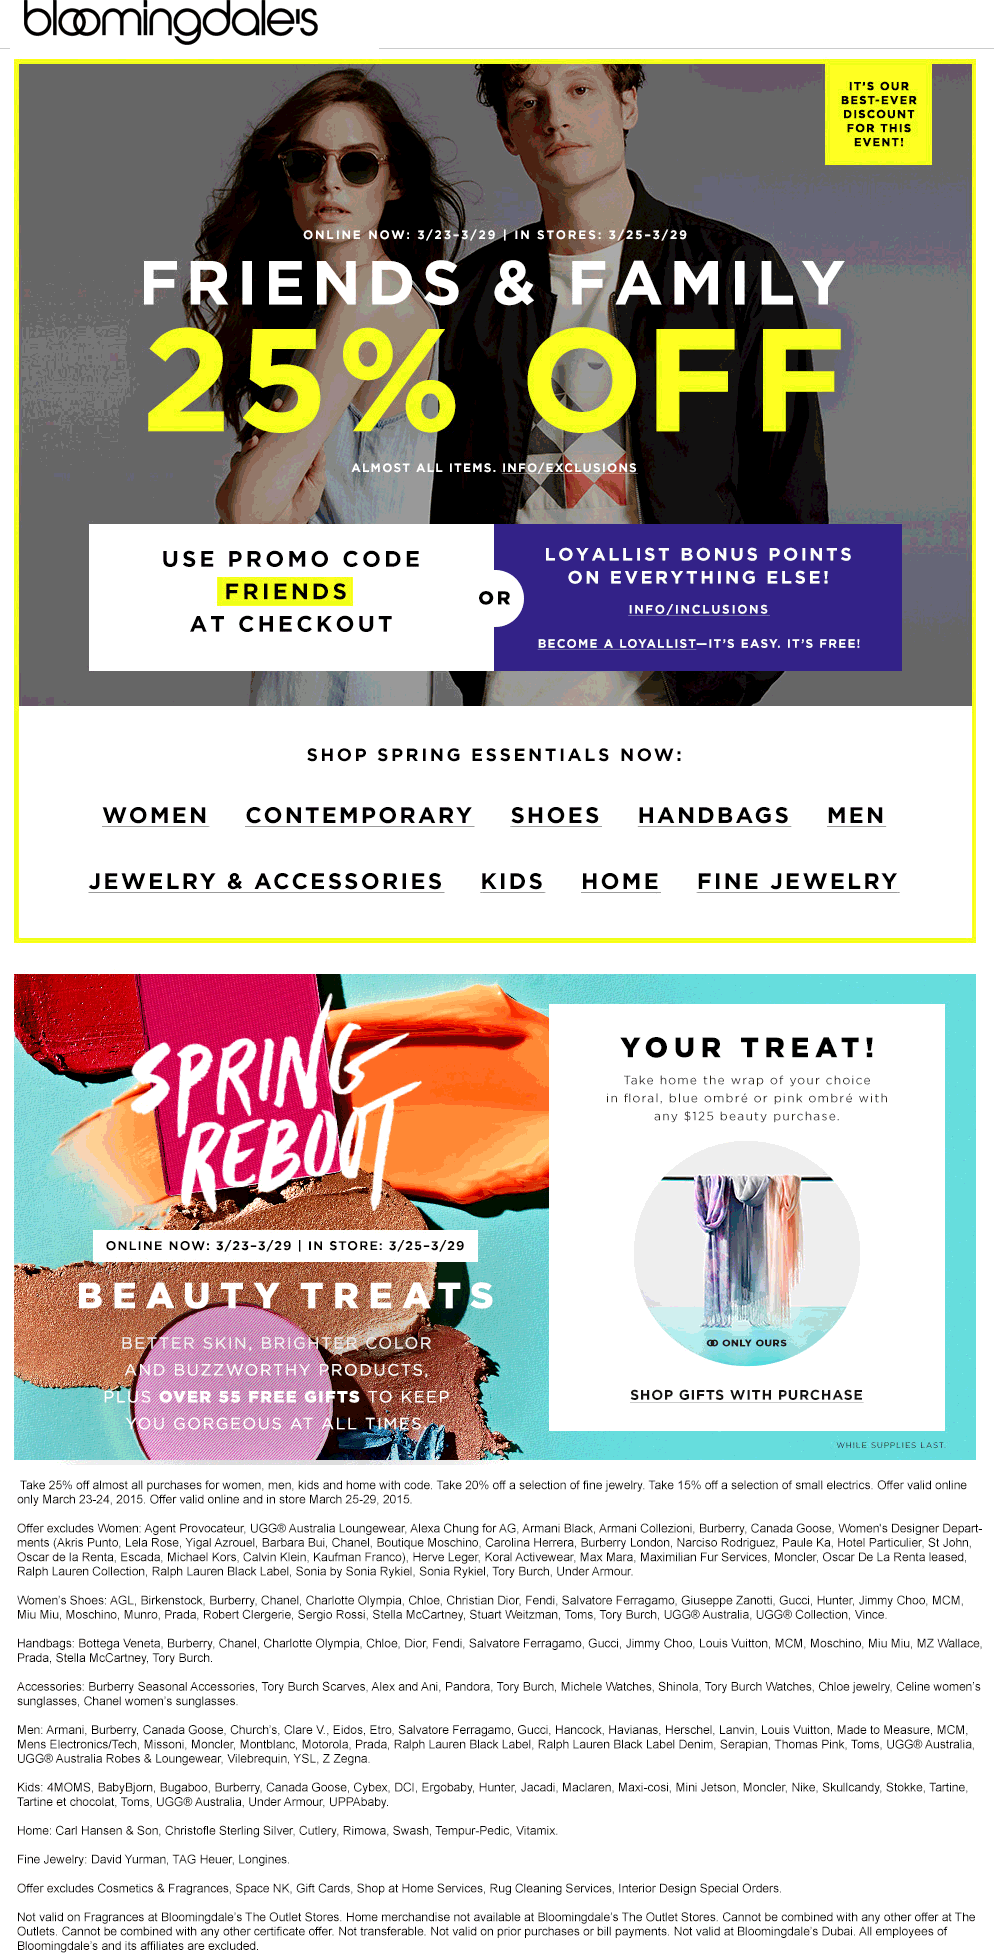 Bloomingdales Coupon February 2019 25% off at Bloomingdales, or online via promo code FRIENDS